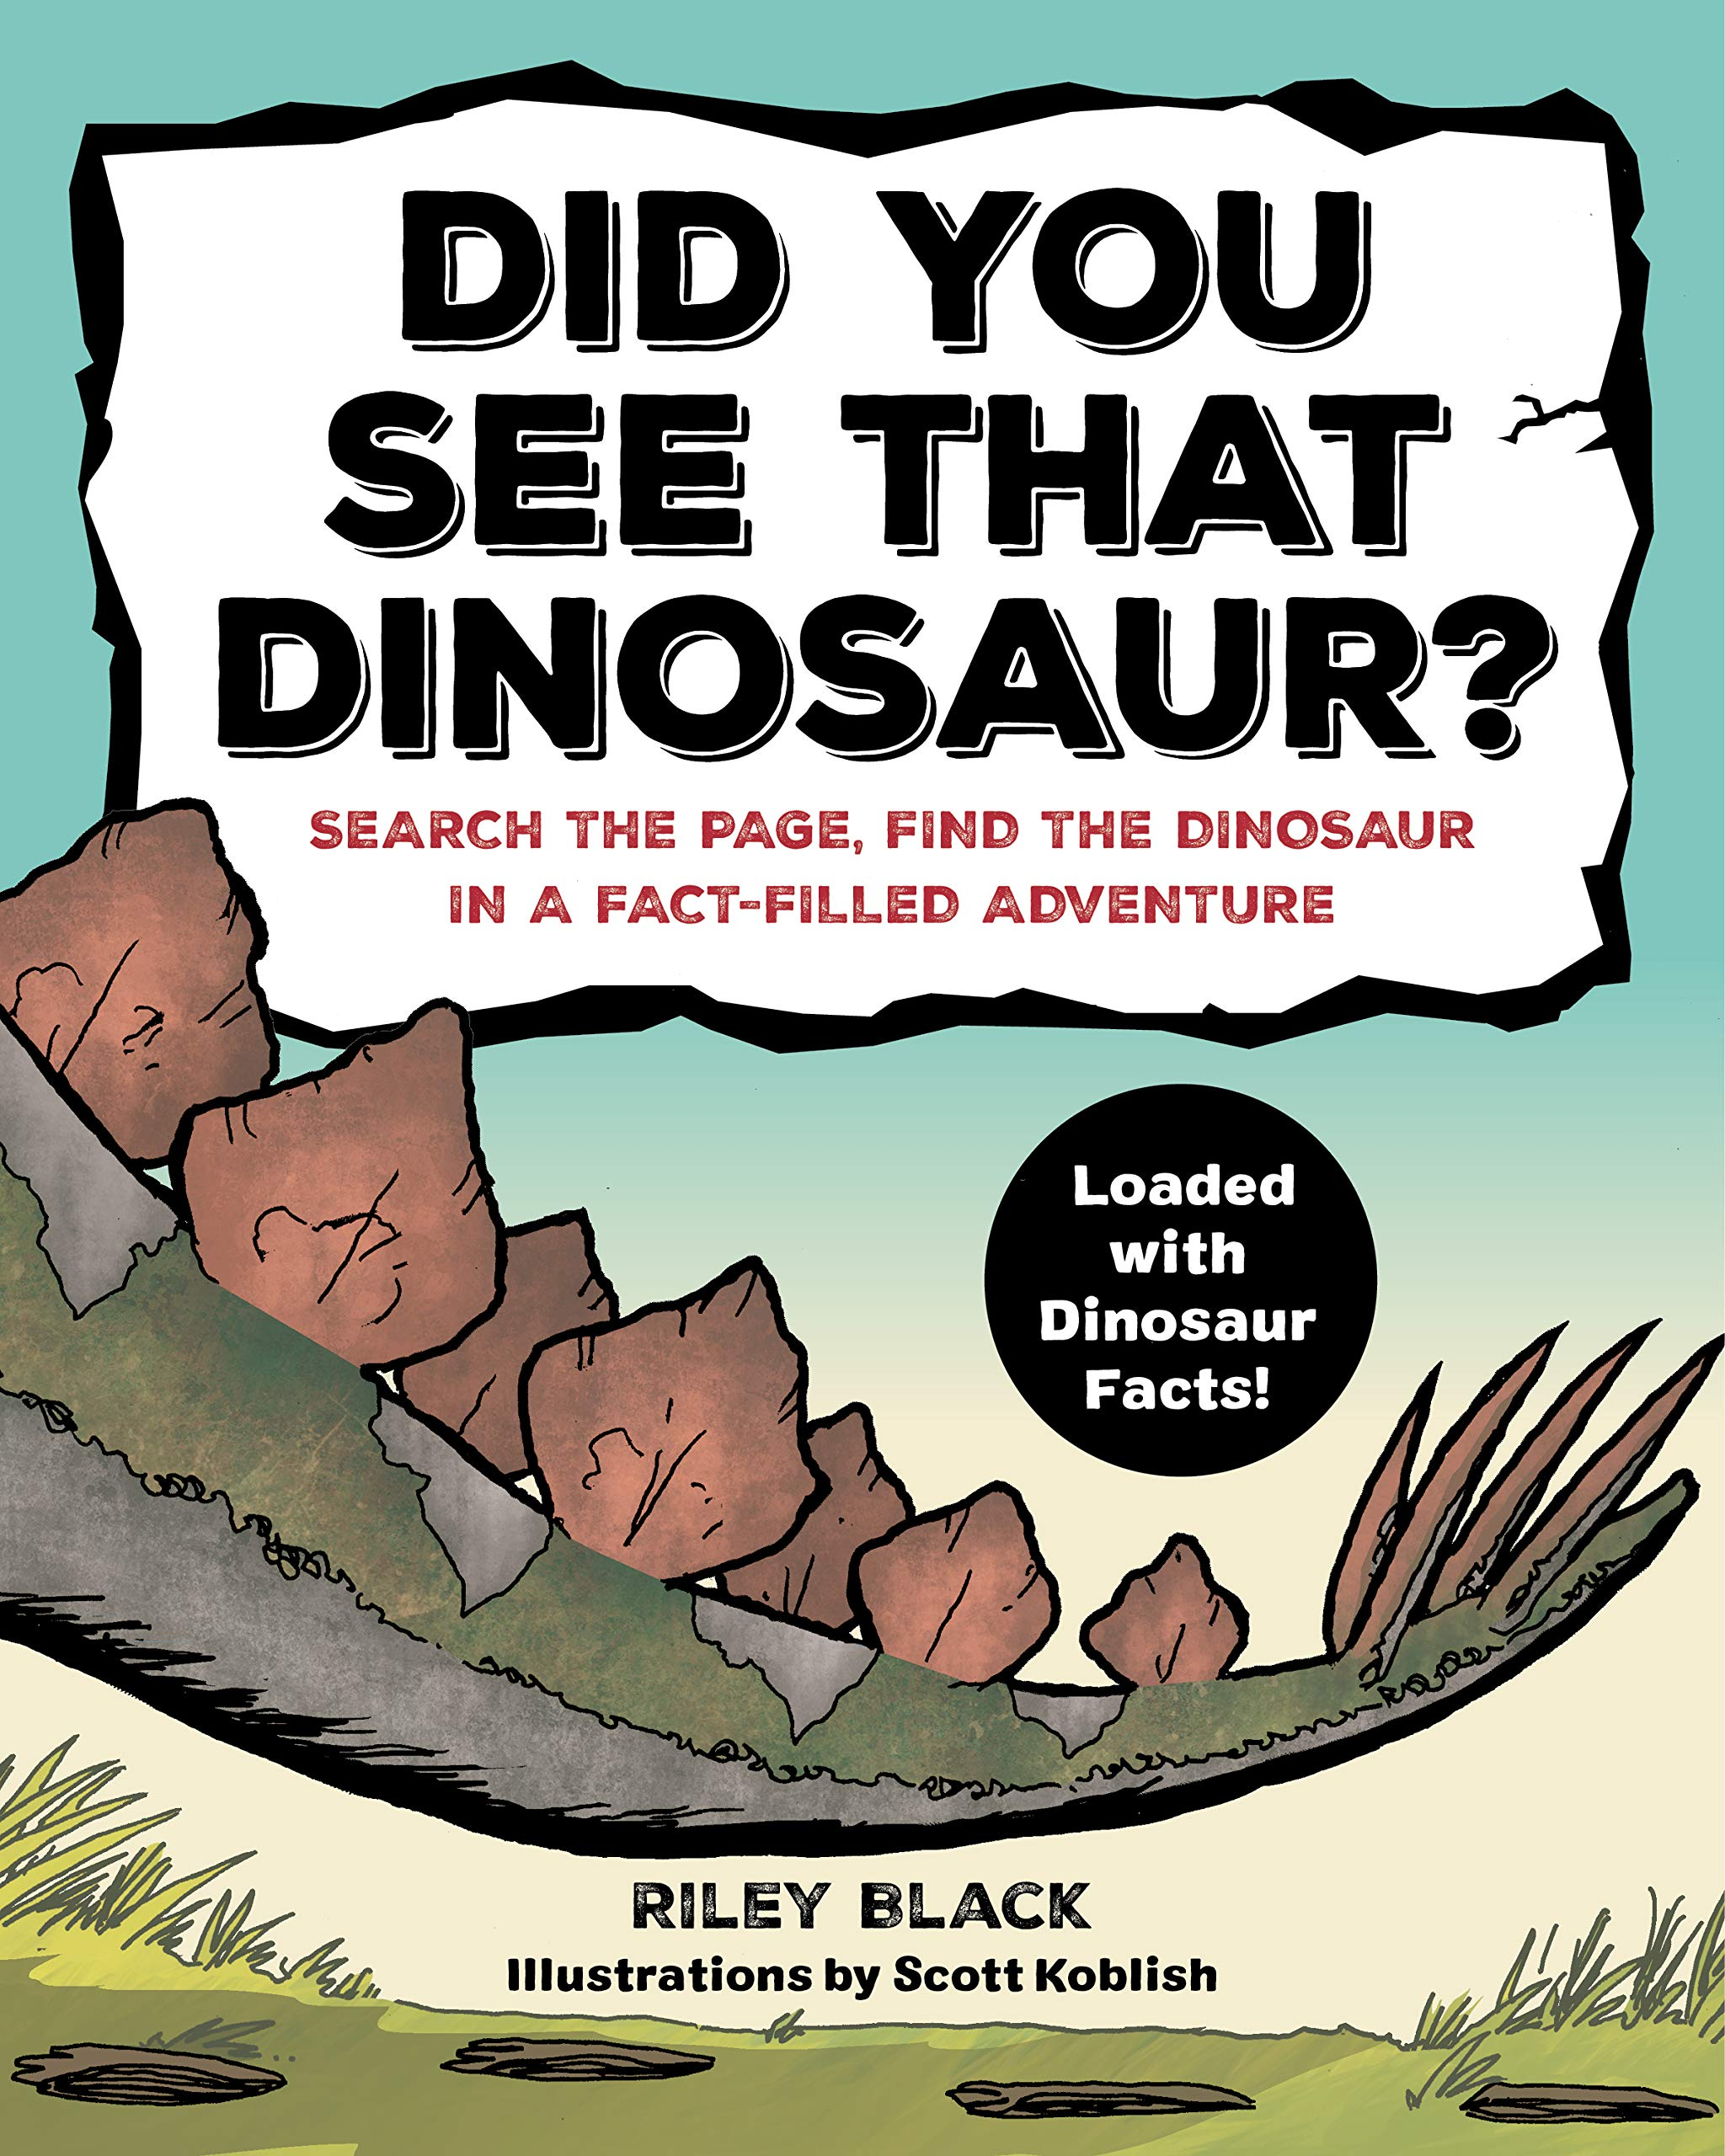 Book cover for Did You See That Dinosaur by Riley Black